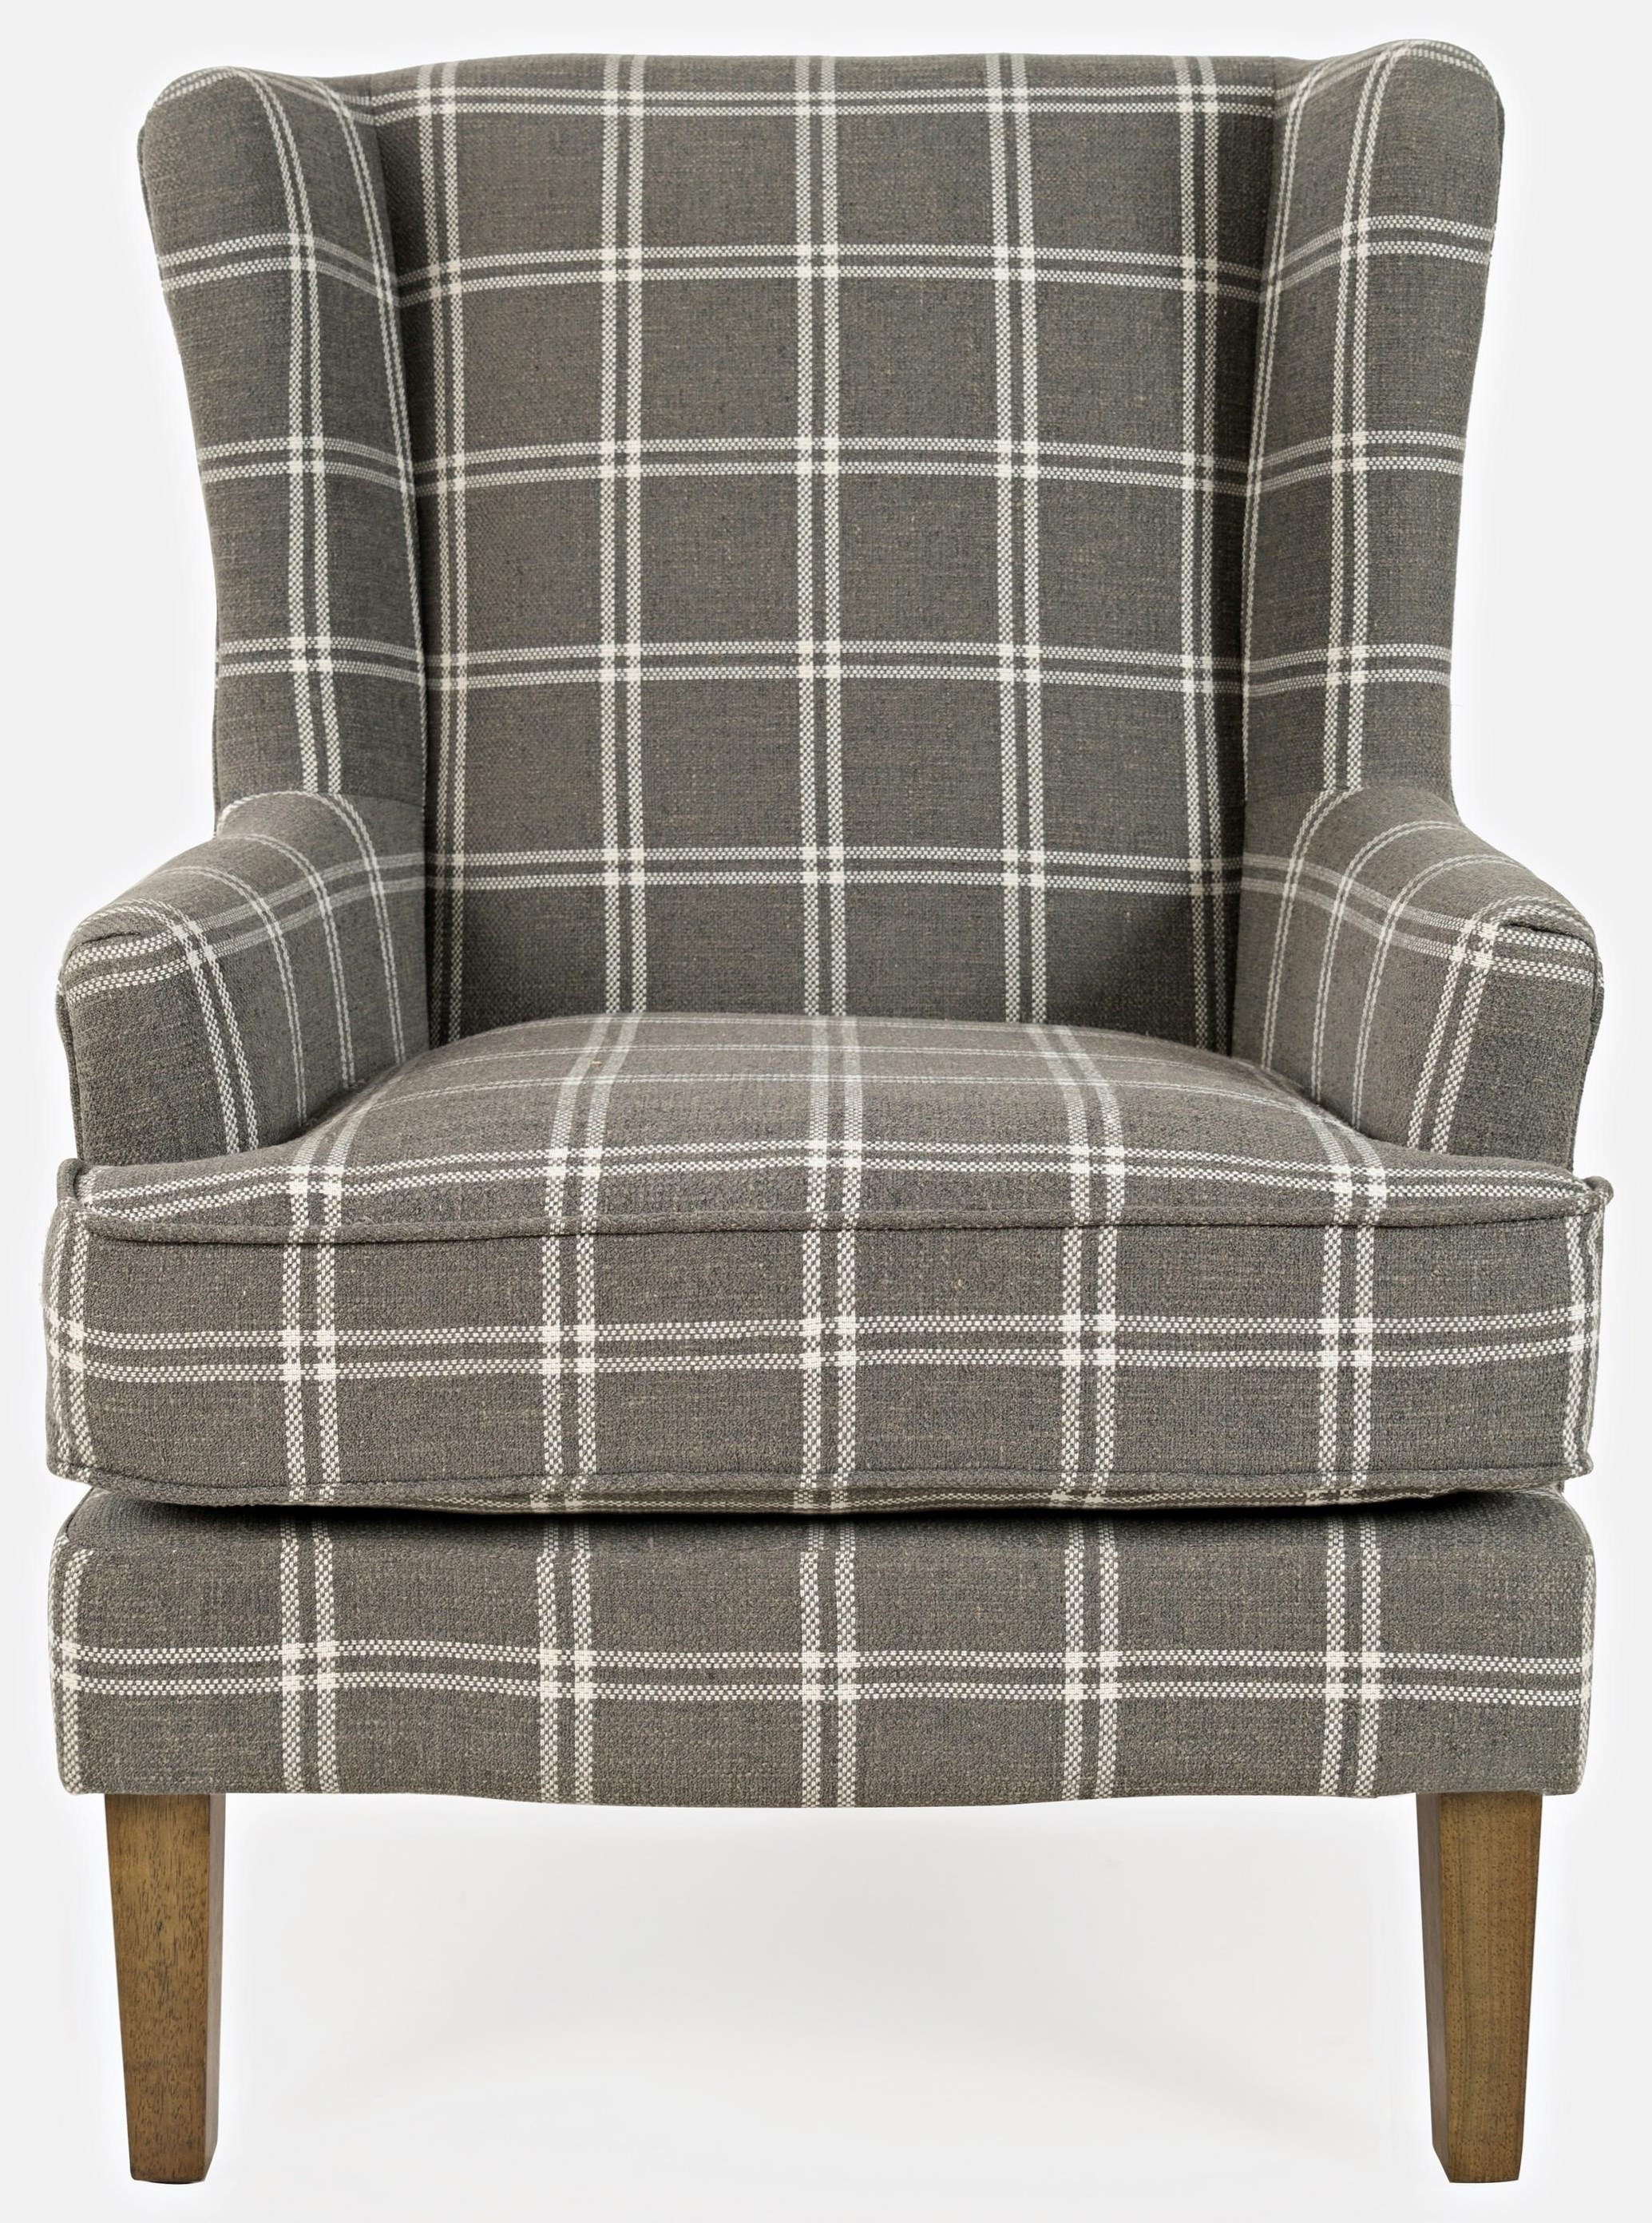 Lacroix Lacroix Grey Chair by Jofran at Stoney Creek Furniture